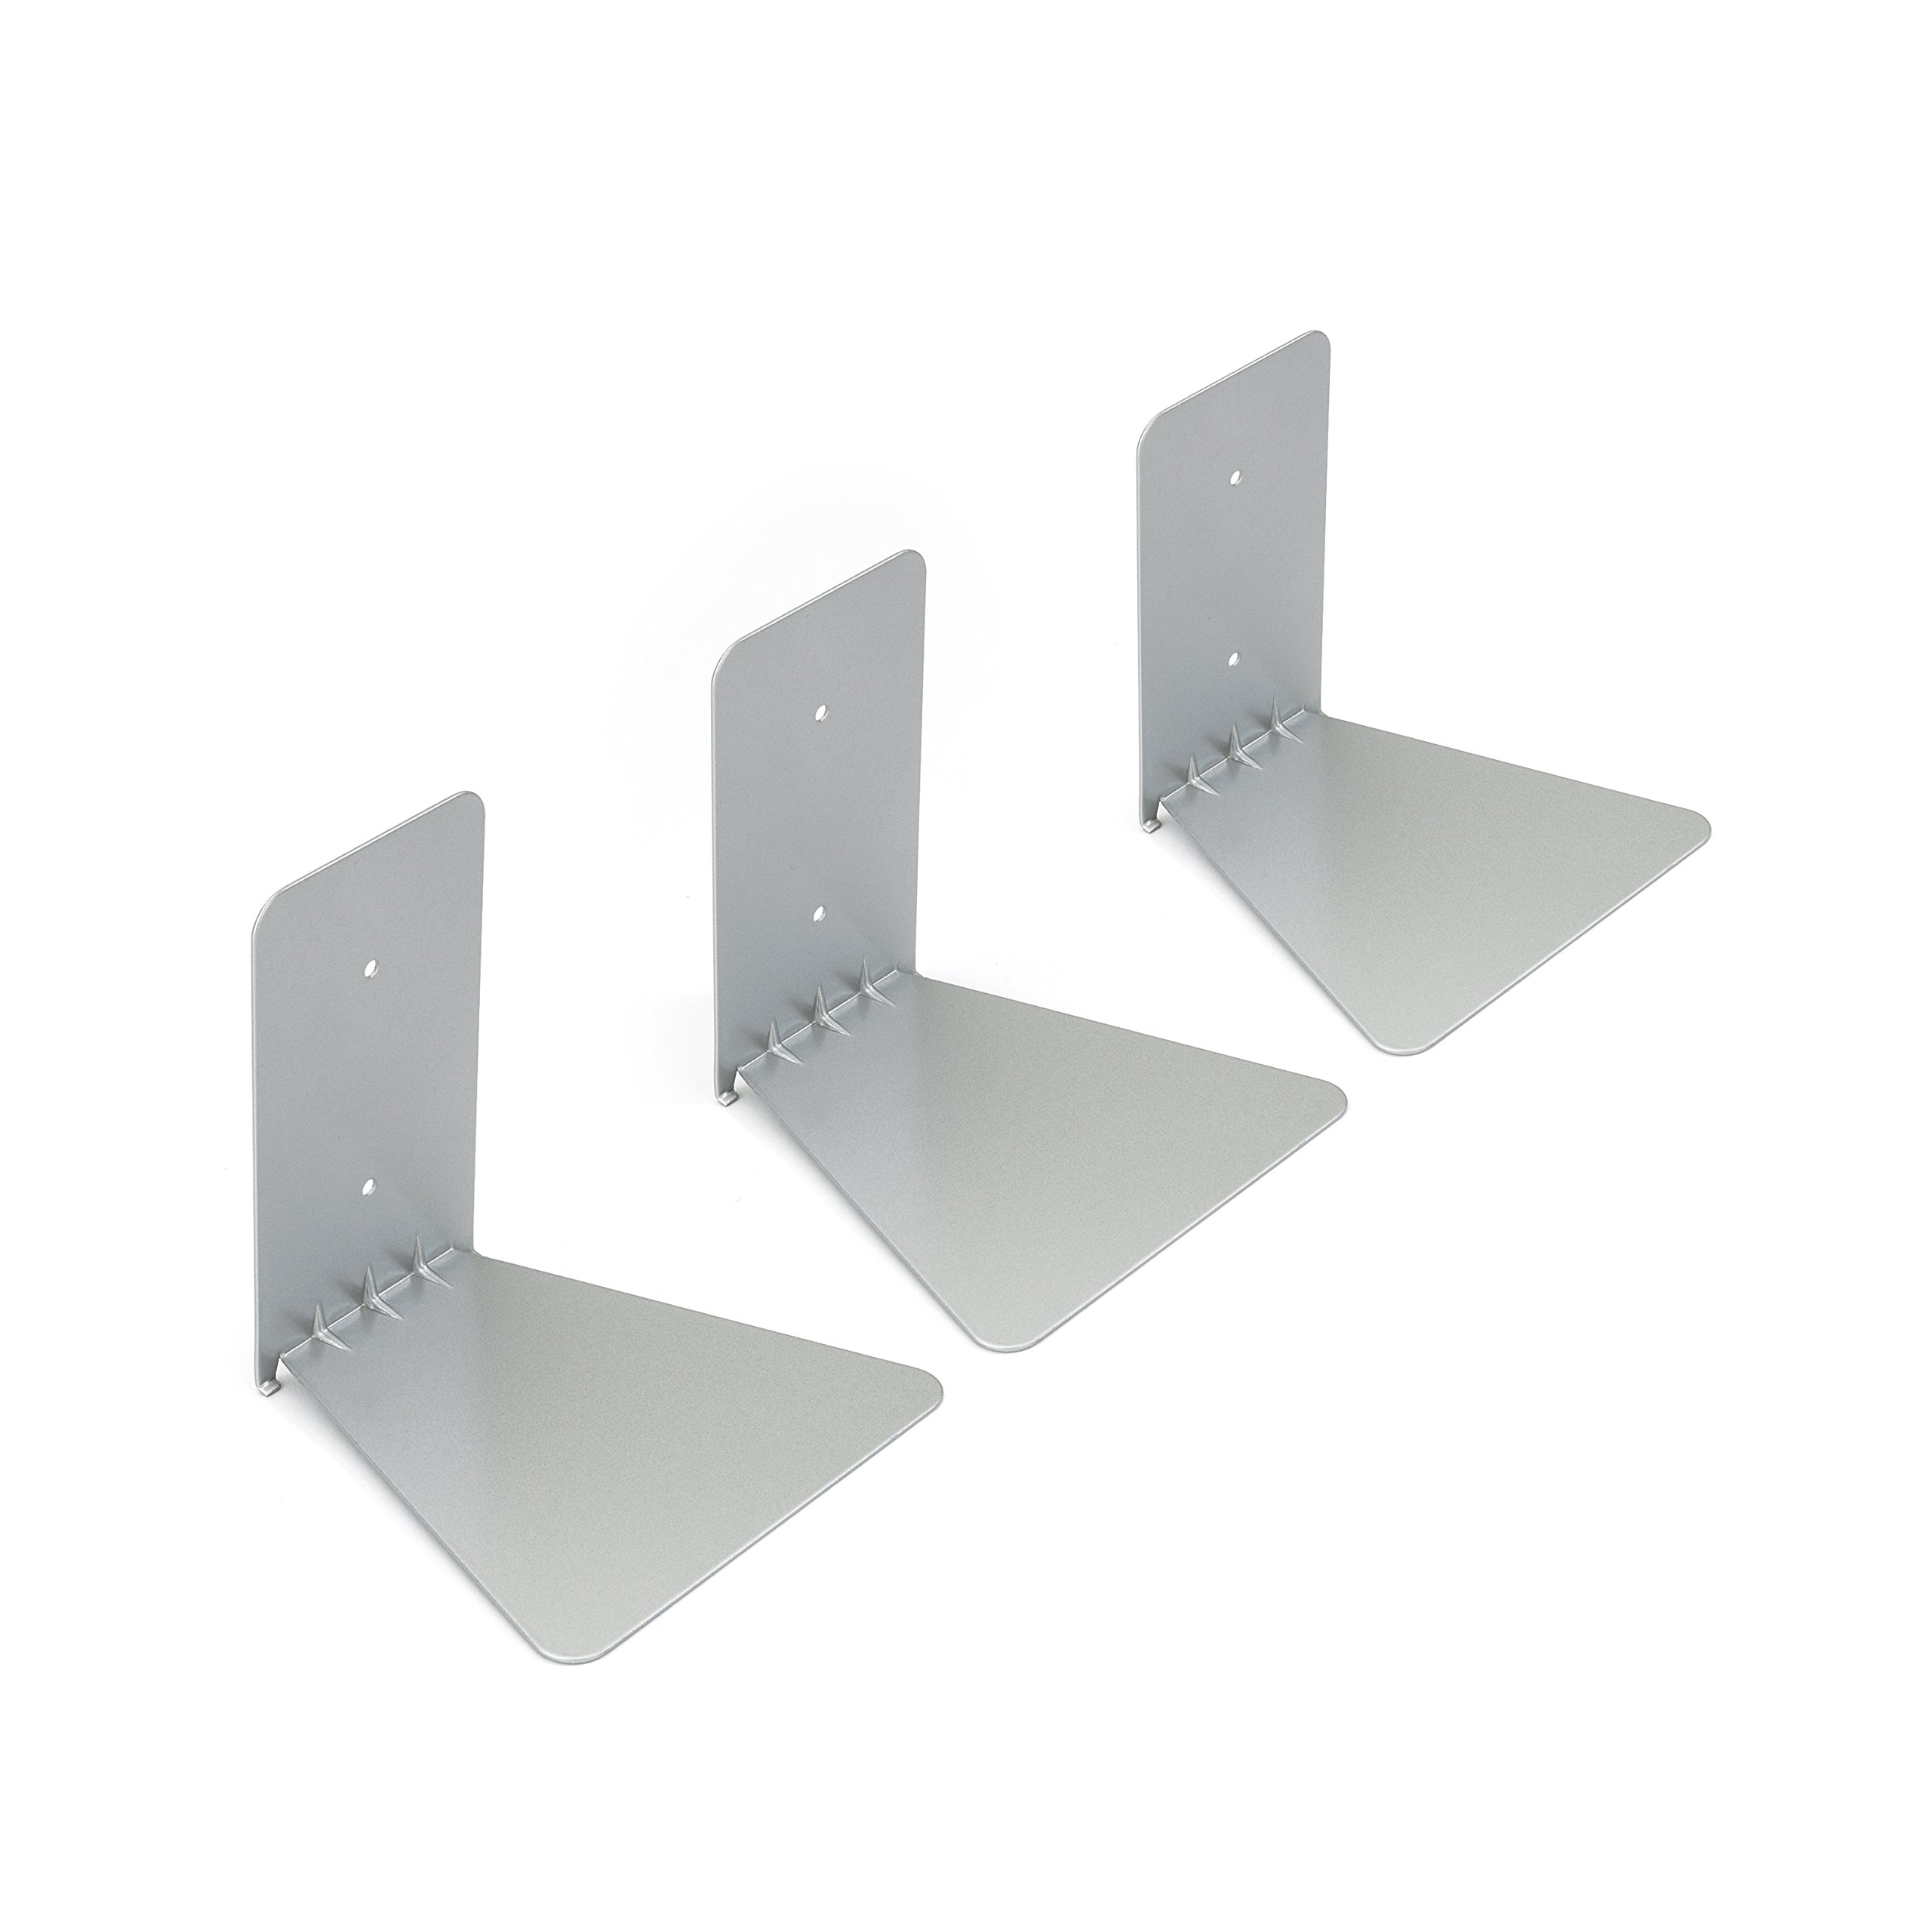 Umbra Conceal Floating Bookshelf - Small Set of 3 Silver Hidden Bookshelves & Wall Displays - Modern Practical Durable L-Shaped Shelf - Mounts to the Wall and Becomes Invisible Behind a Stack of Books